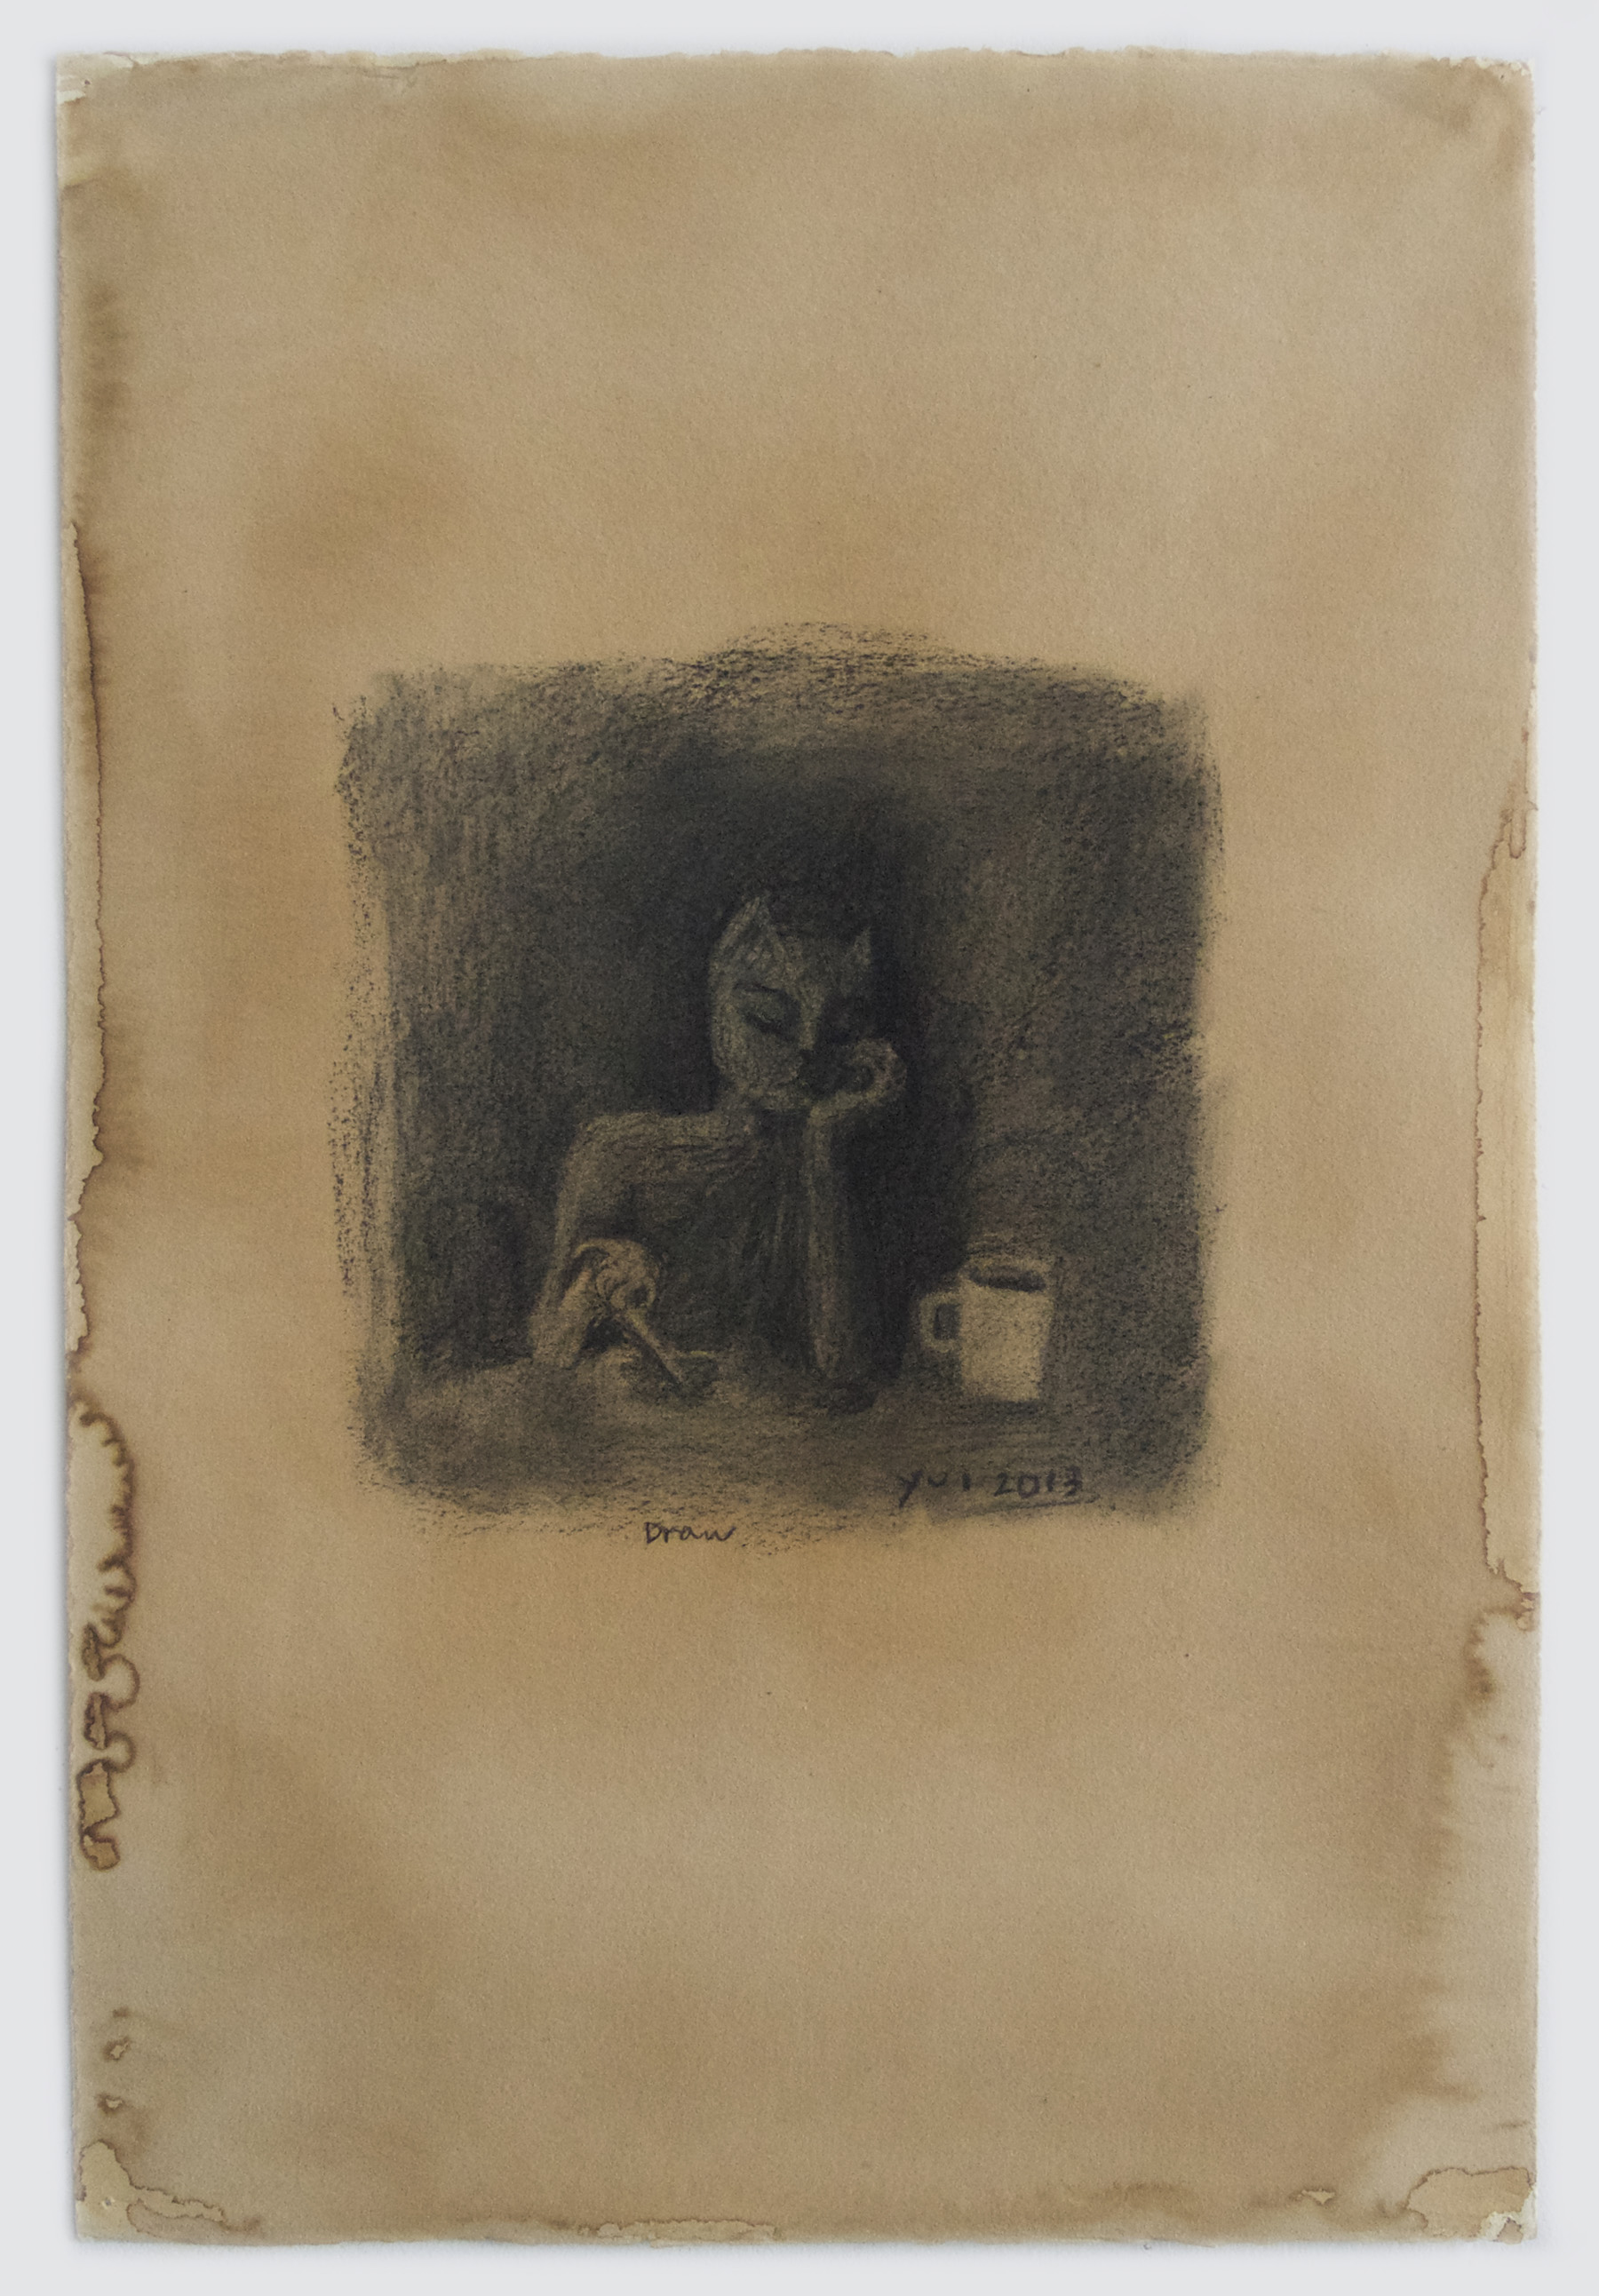 Yui Kugimiya  Draw , 2013  Charcoal and coffee on paper  22x15 inches